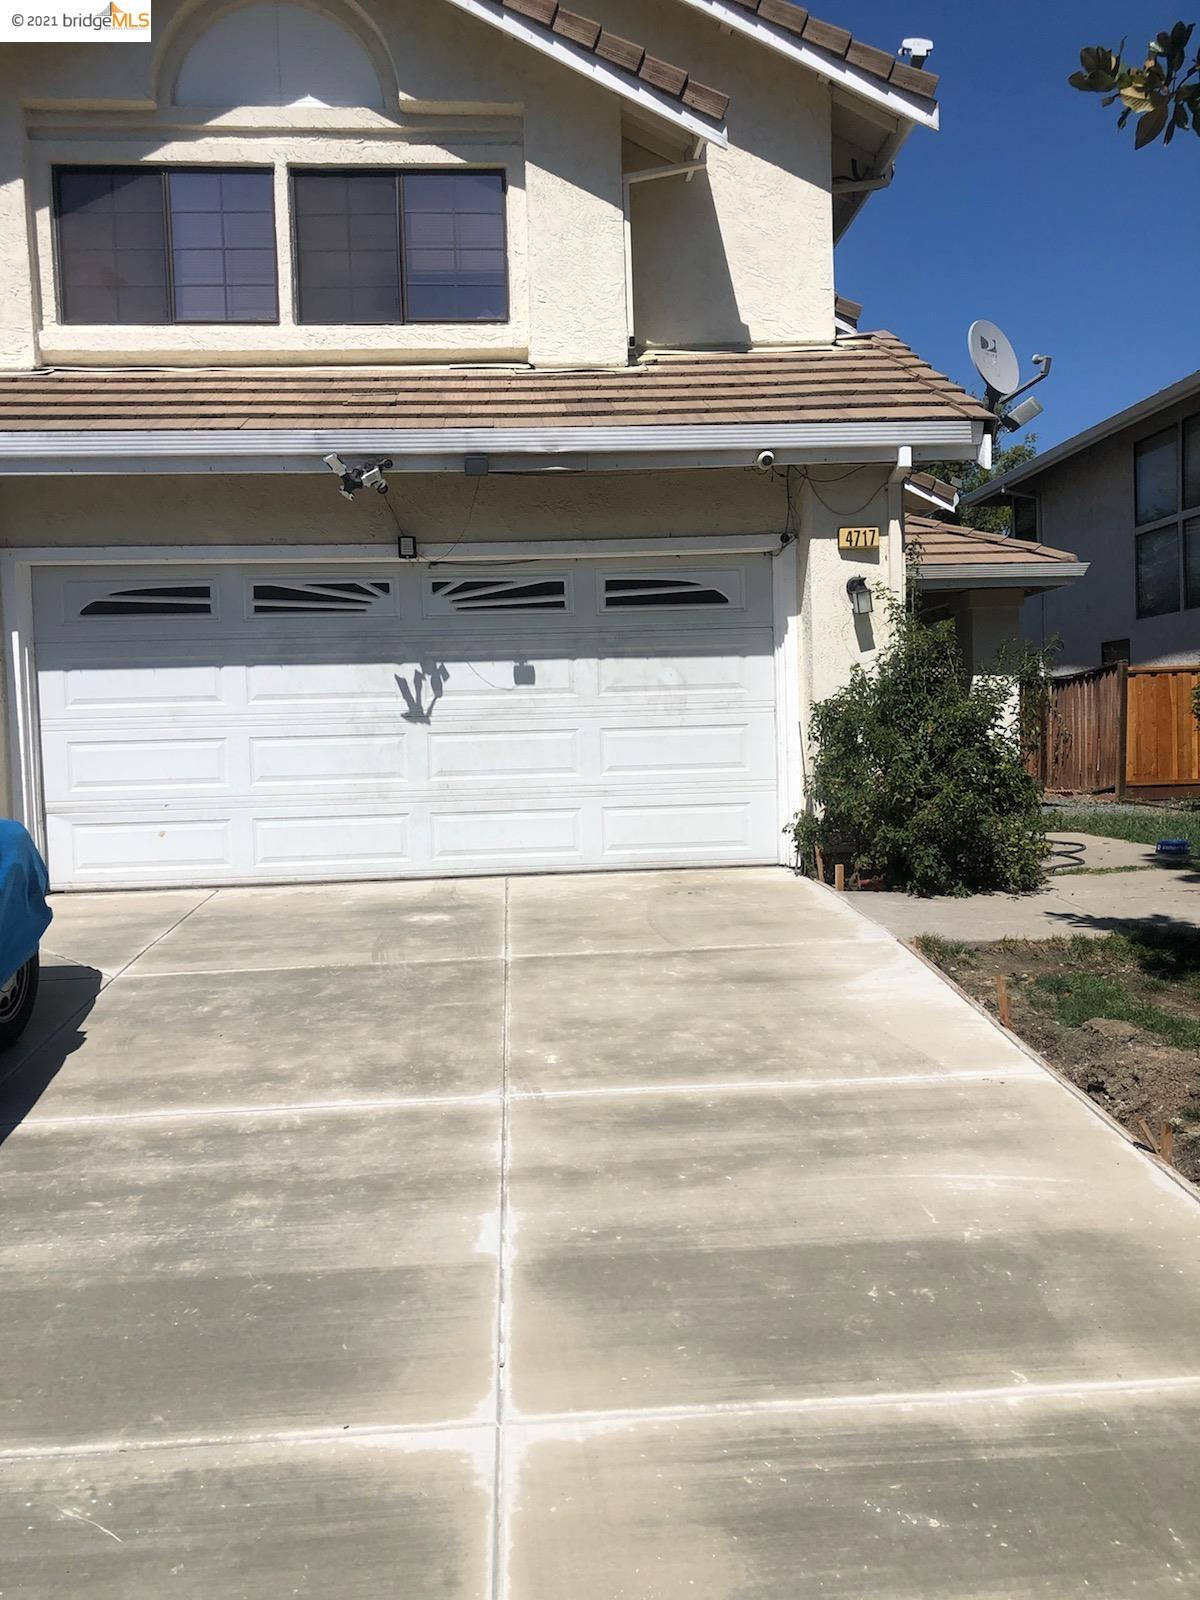 4717 Shannondale Dr, ANTIOCH, CA 94531